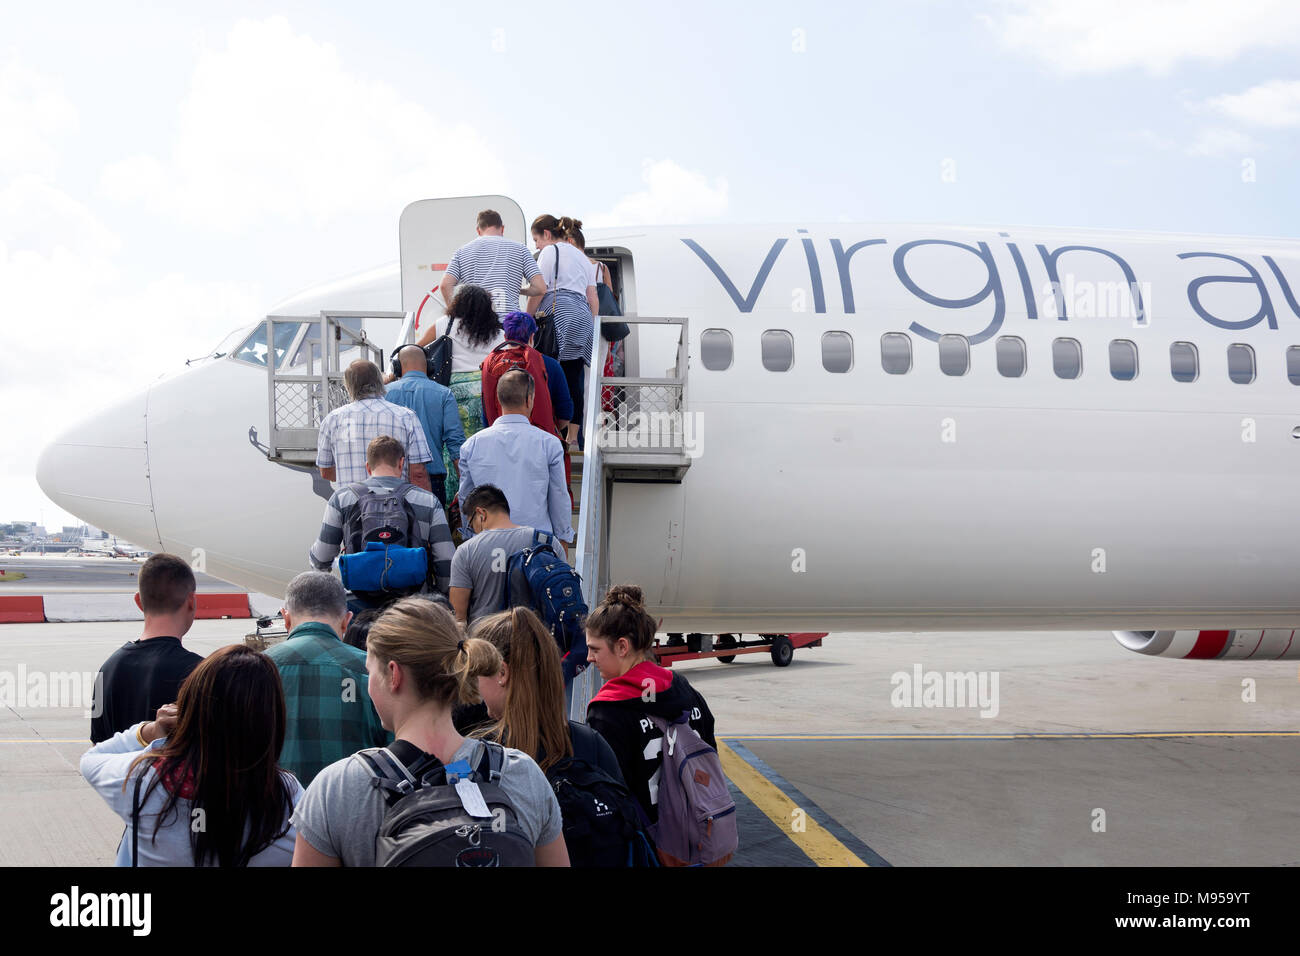 Passengers boarding Virgin Australian Boeing 737 at Sydney Kingsford Smith Airport, Mascot, Sydney, New South Wales, Australia - Stock Image